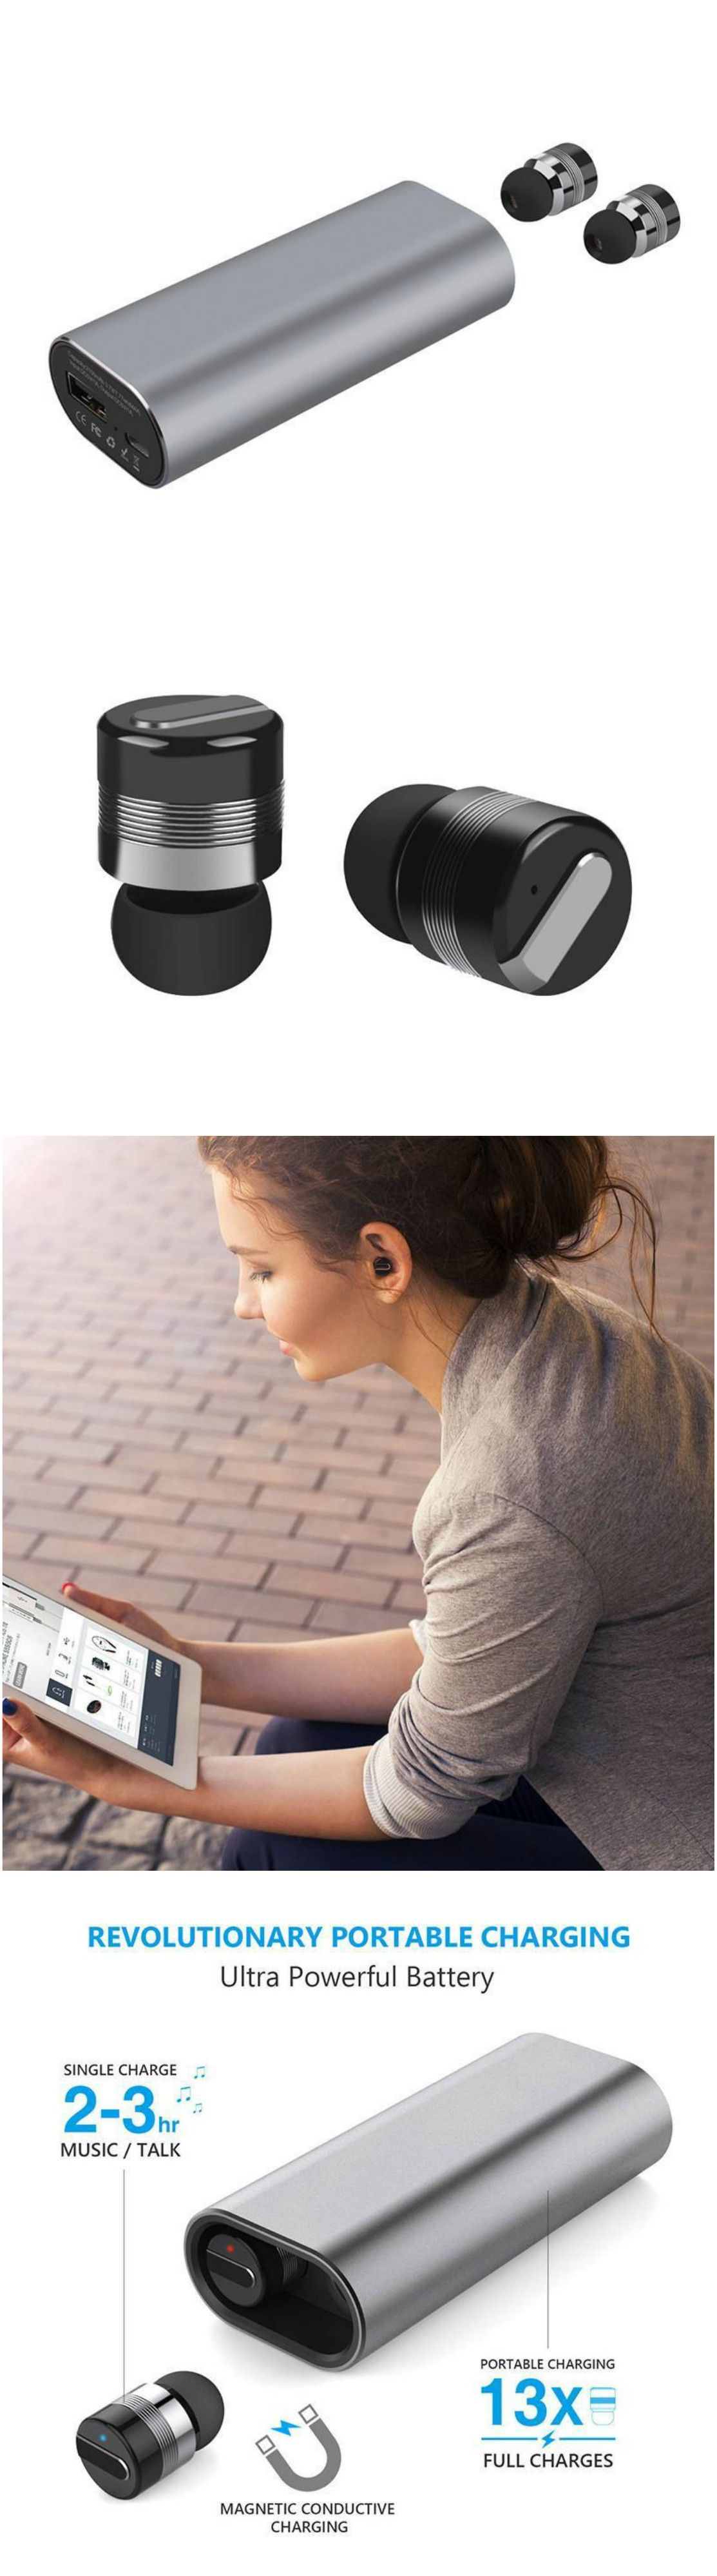 44333f13eef Bluetooth Headphone Sport Headphones Wireless Headset with Microphone. Fits  into workout and gym clothes. Great for running without tangles!